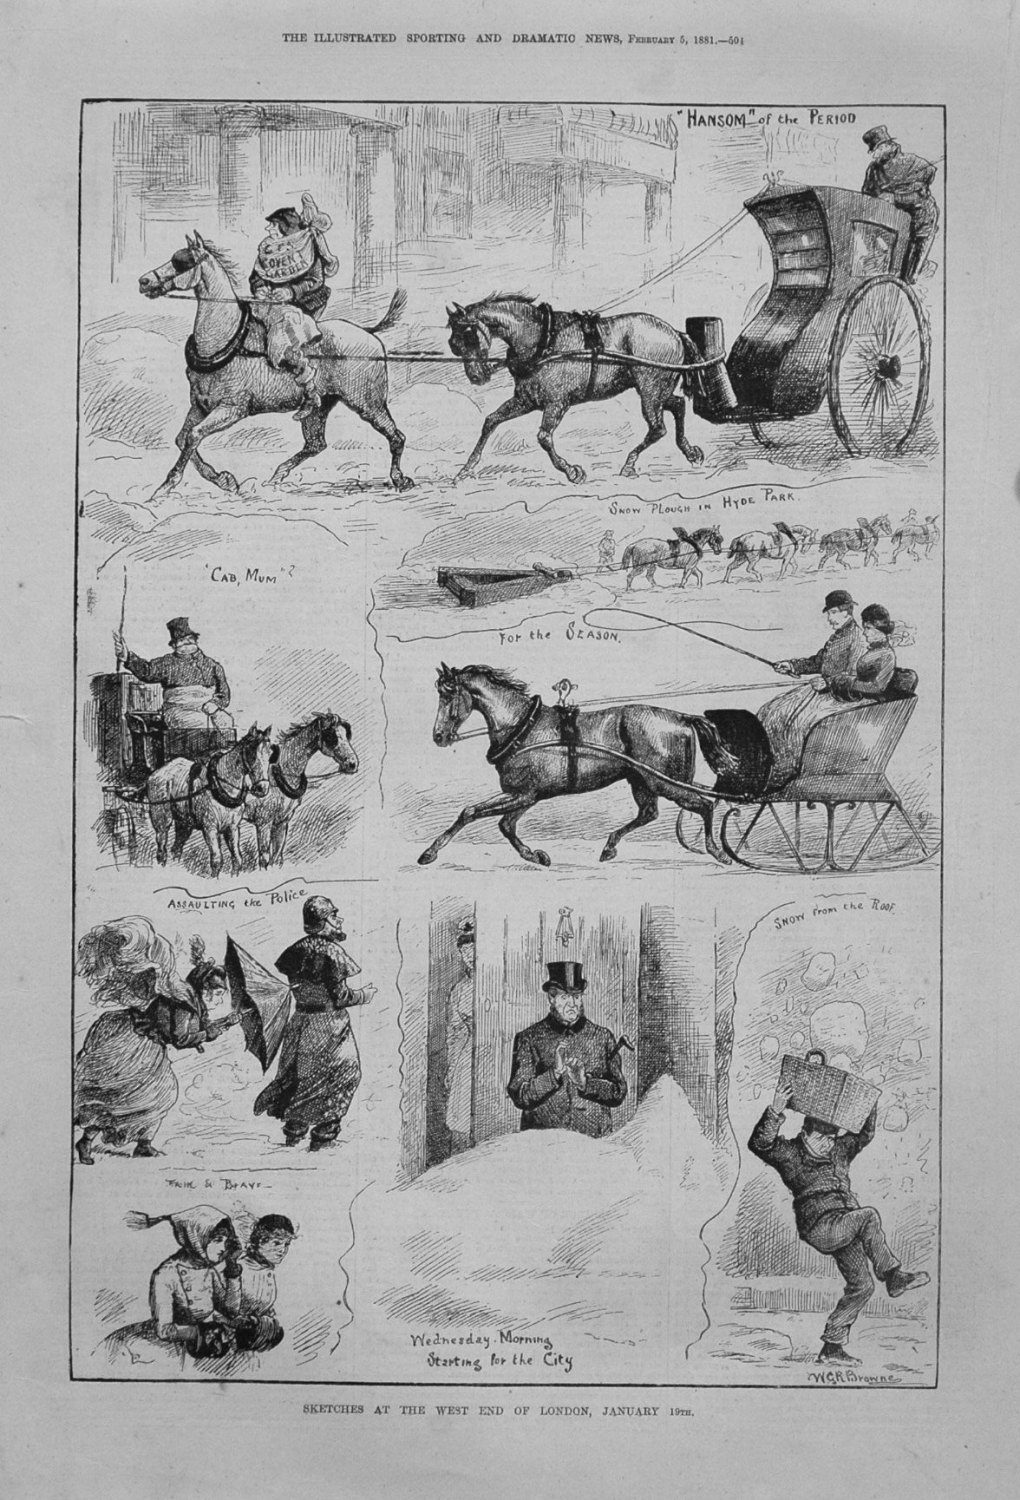 Sketches at the West End of London, January 19th. 1881